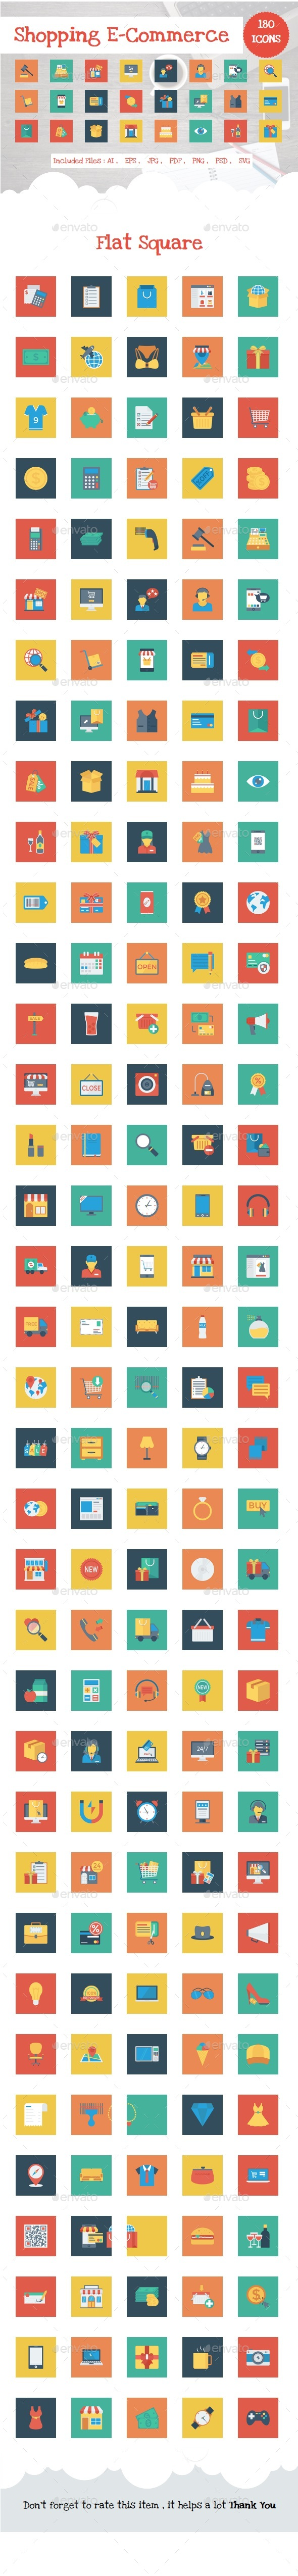 Shopping and E-Commerce Flat Square - Web Icons